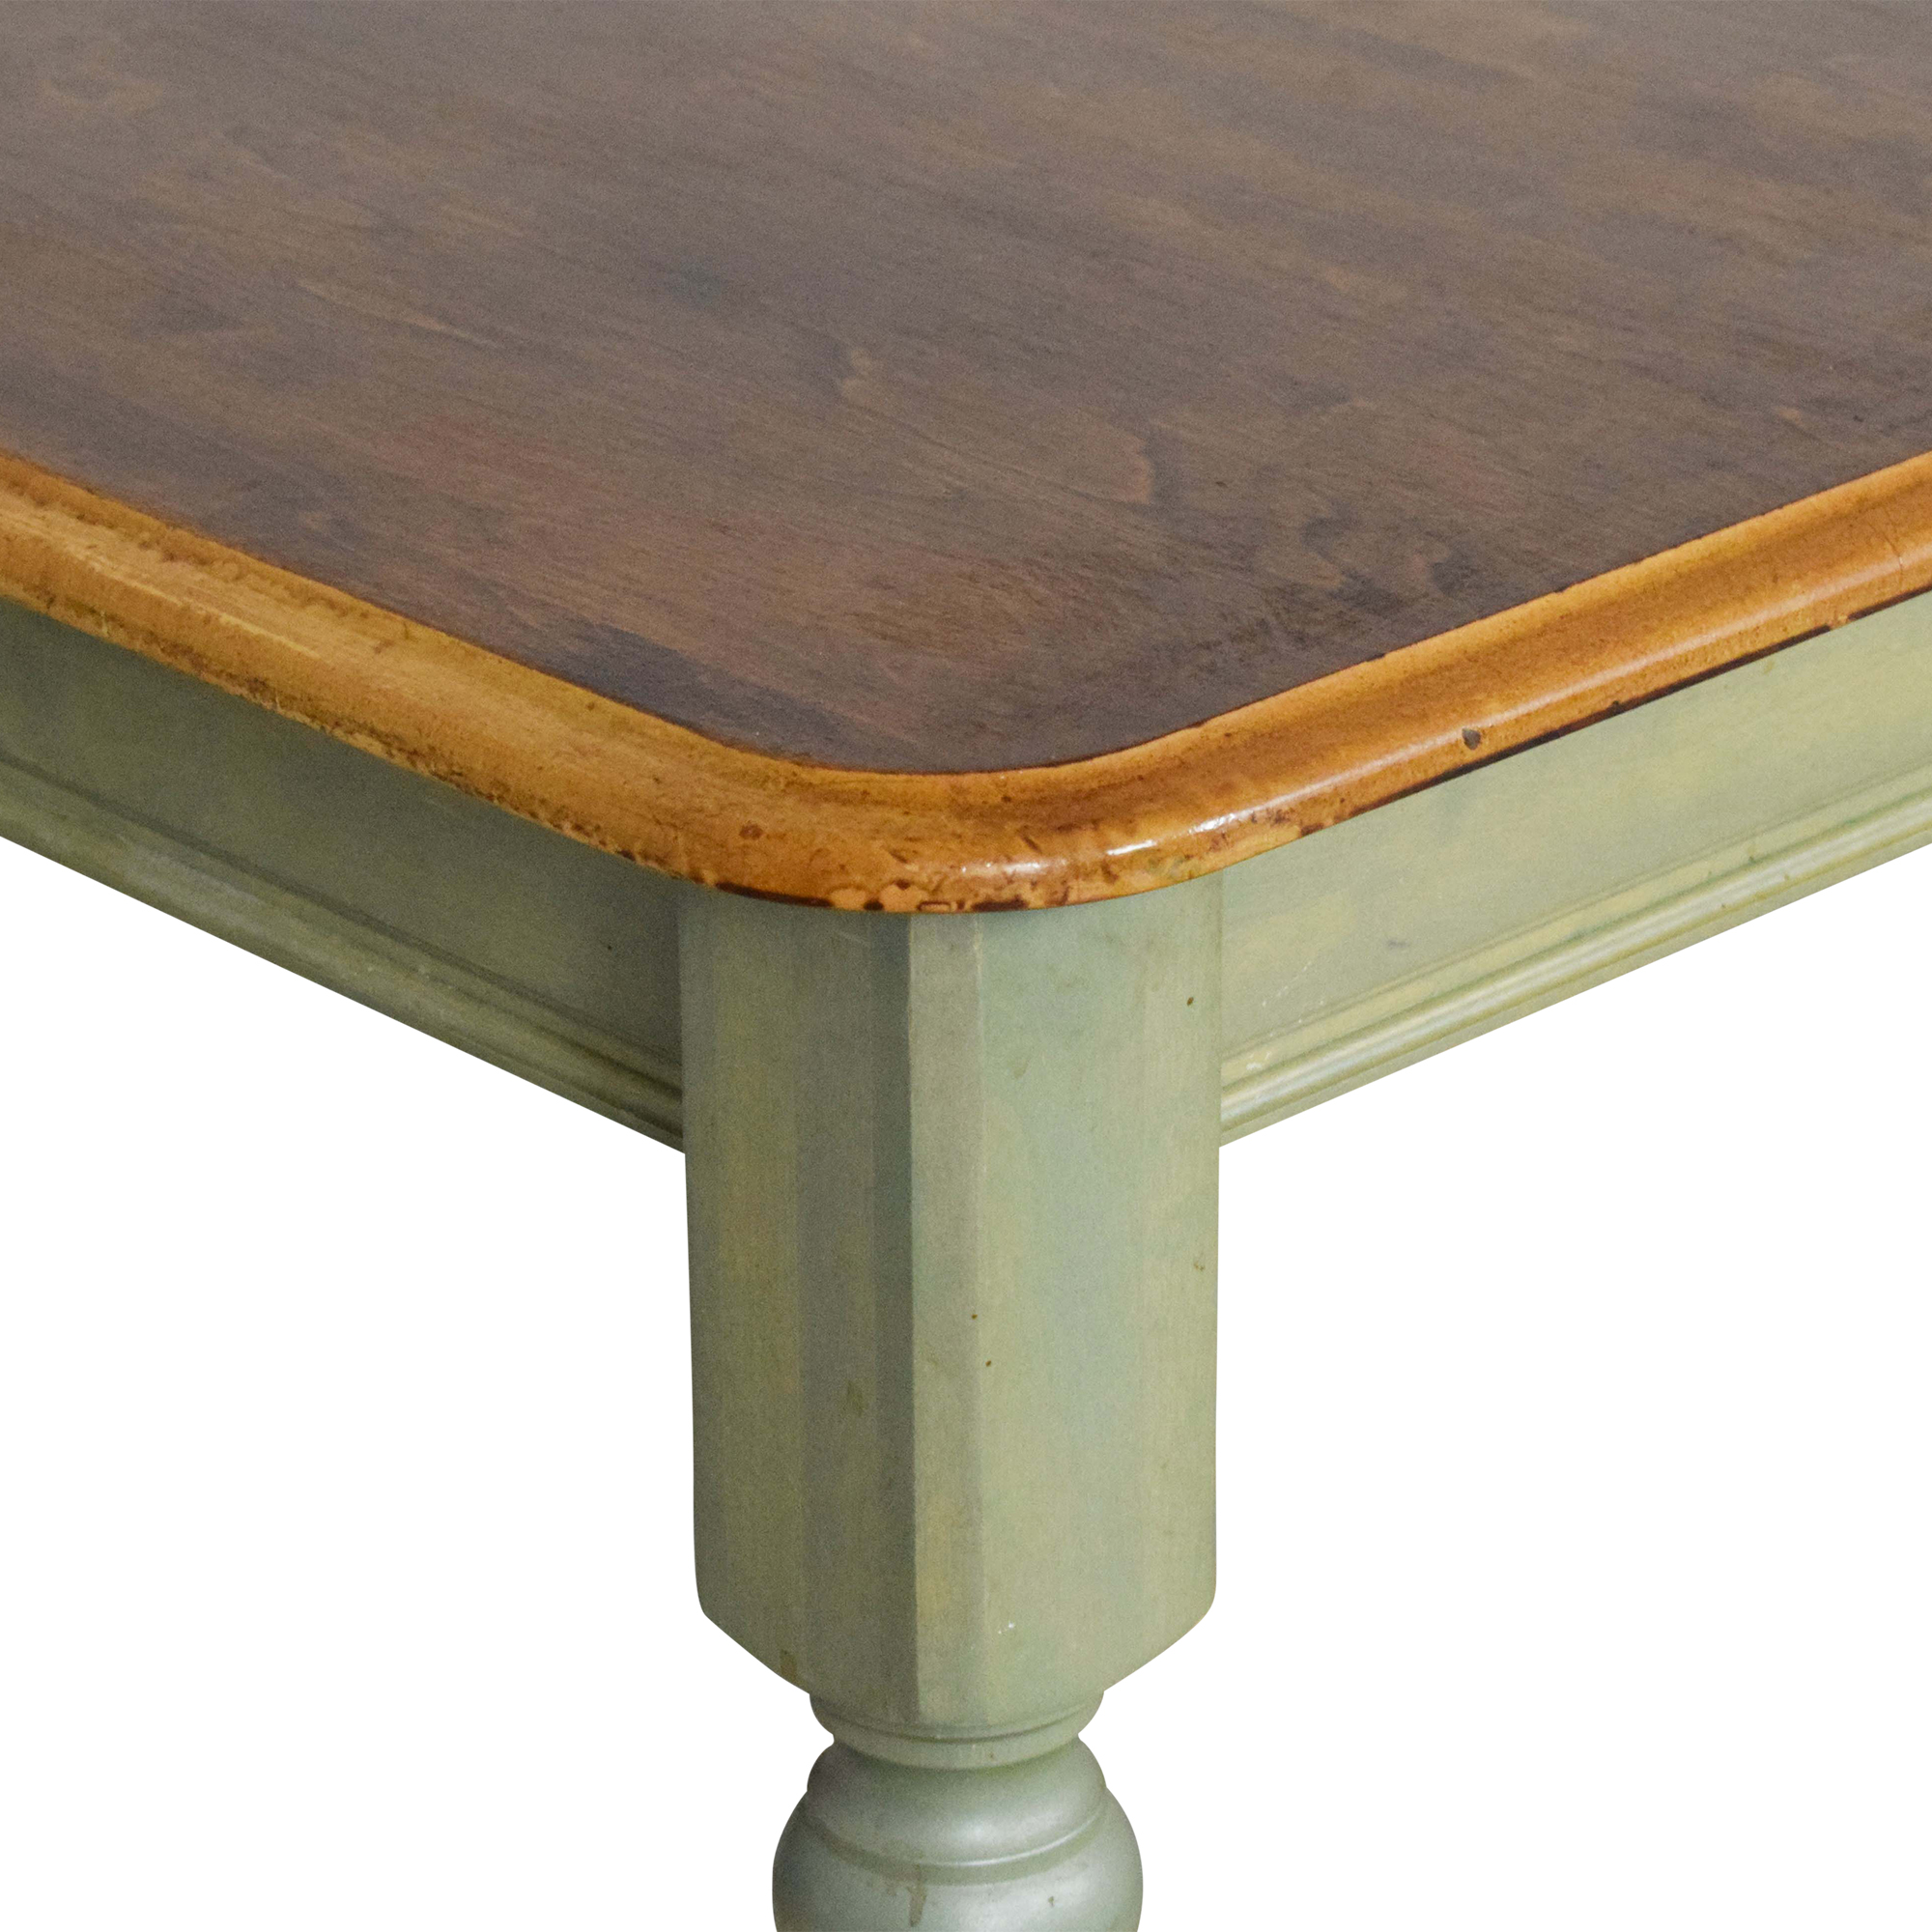 Canadel Canadel Farmhouse Dining Table for sale